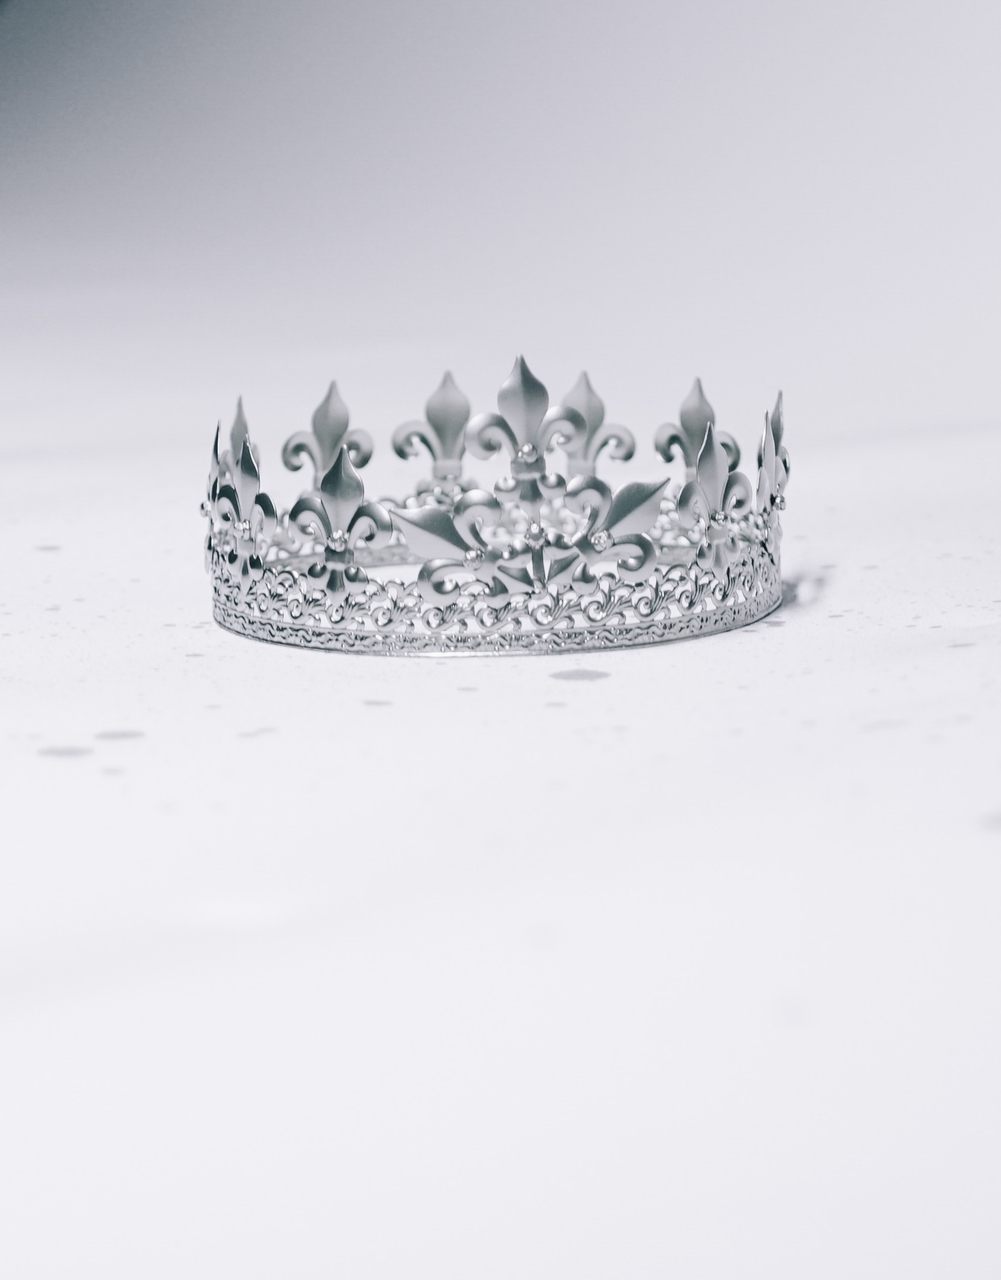 Wallpaper Princess Crown And Marble Image 6469347 On Favim Com